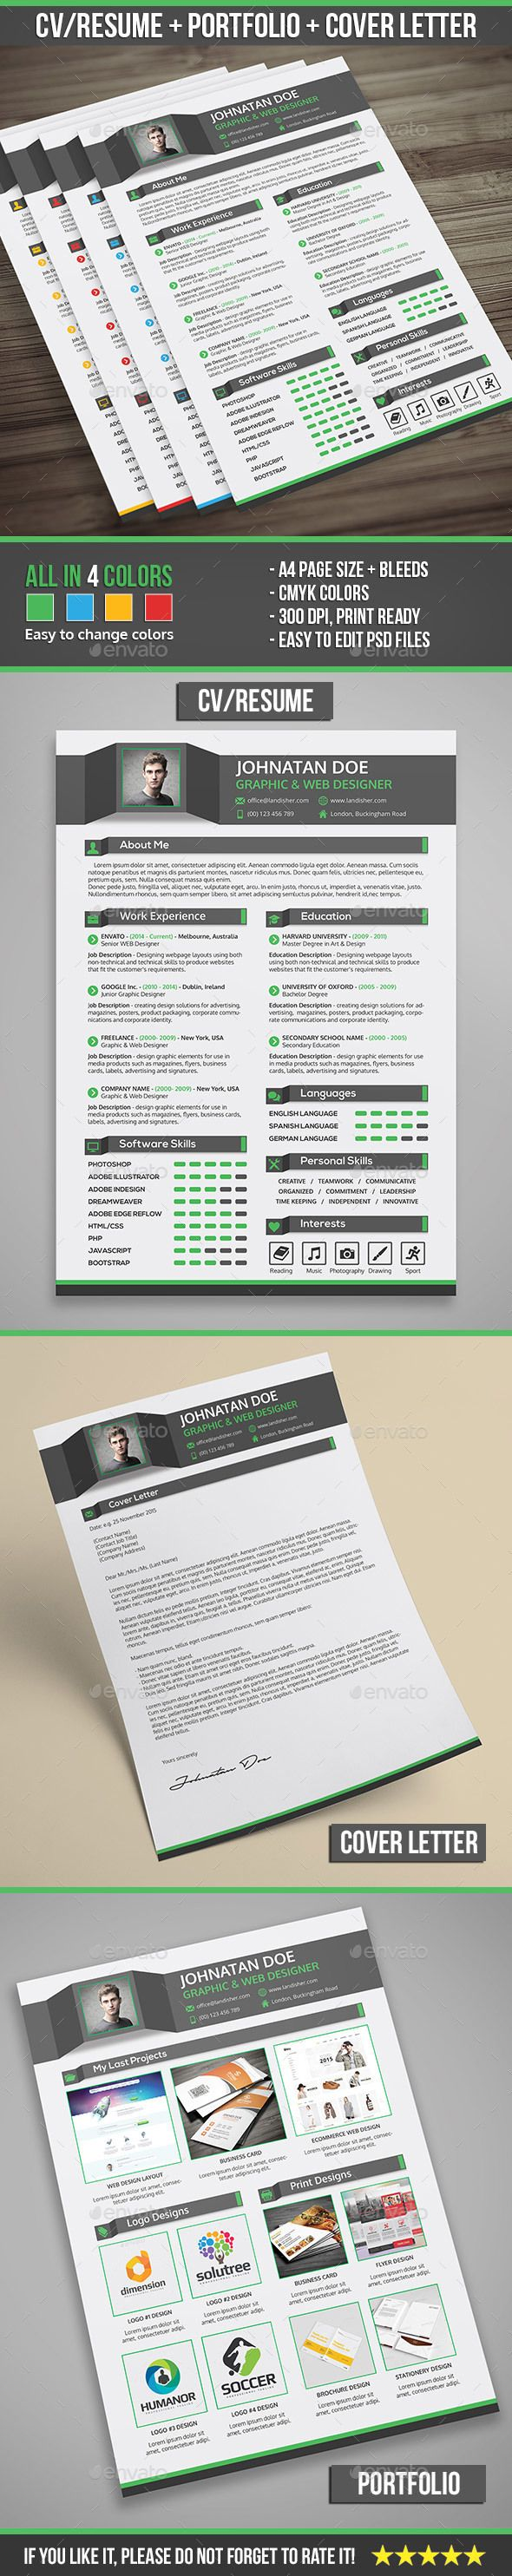 43 best Cv images on Pinterest | Resume design, Design resume and ...